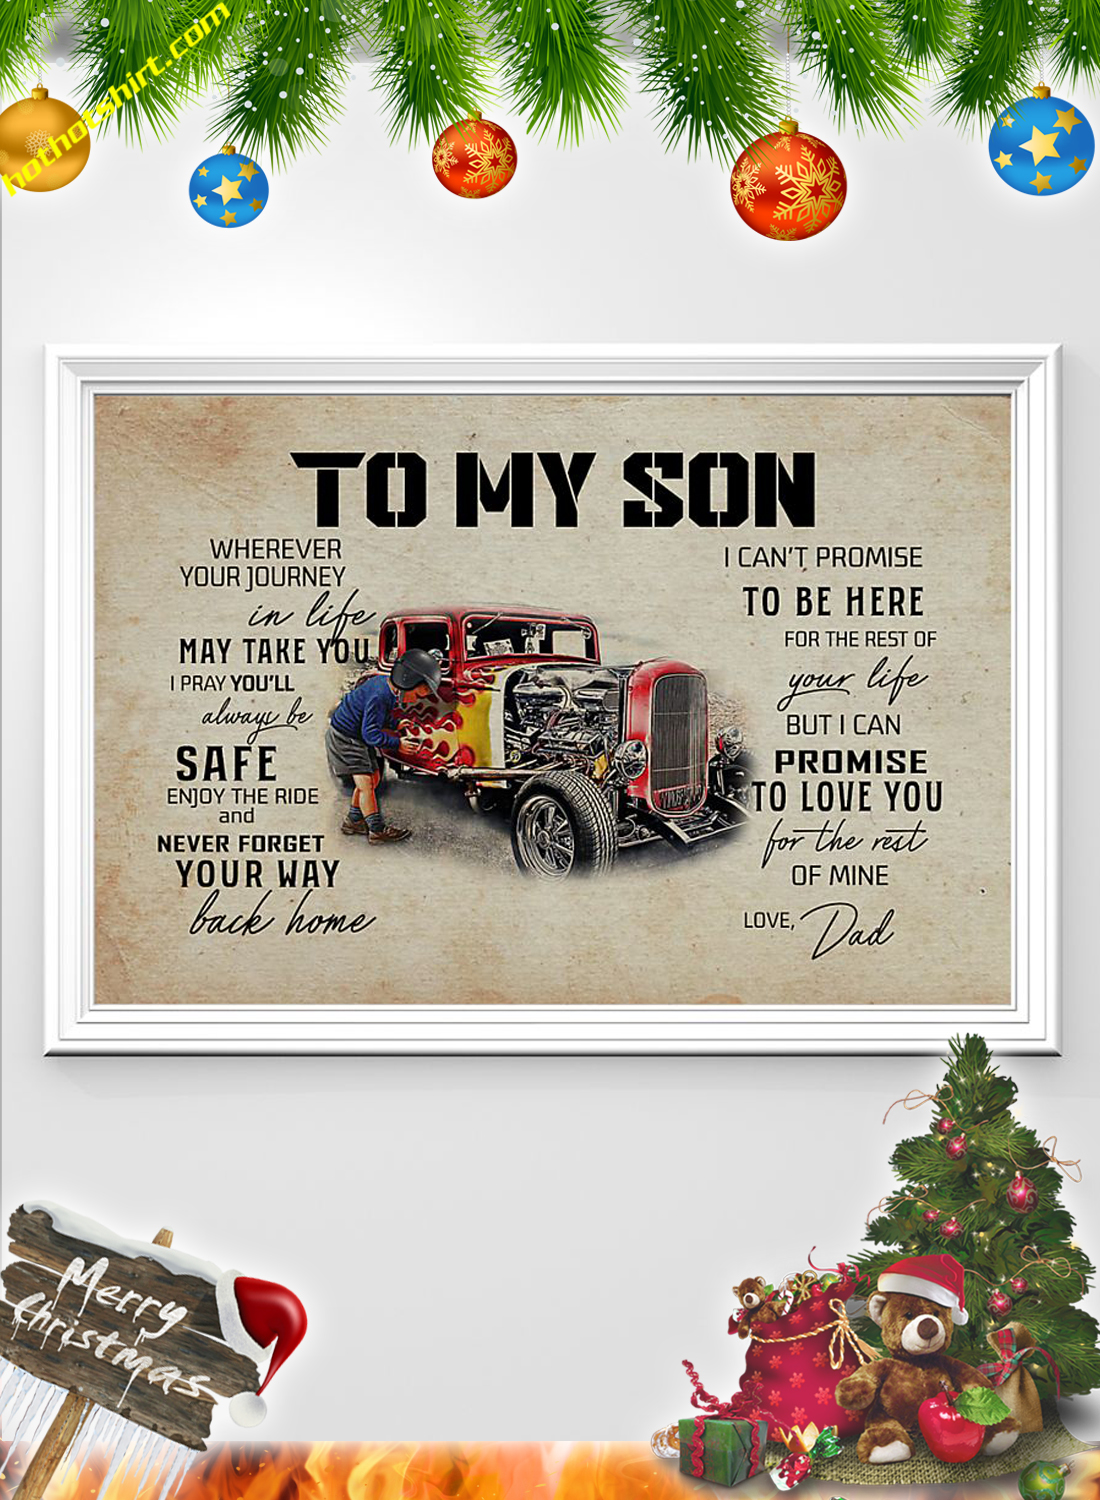 Hot rod To my son dad poster 2